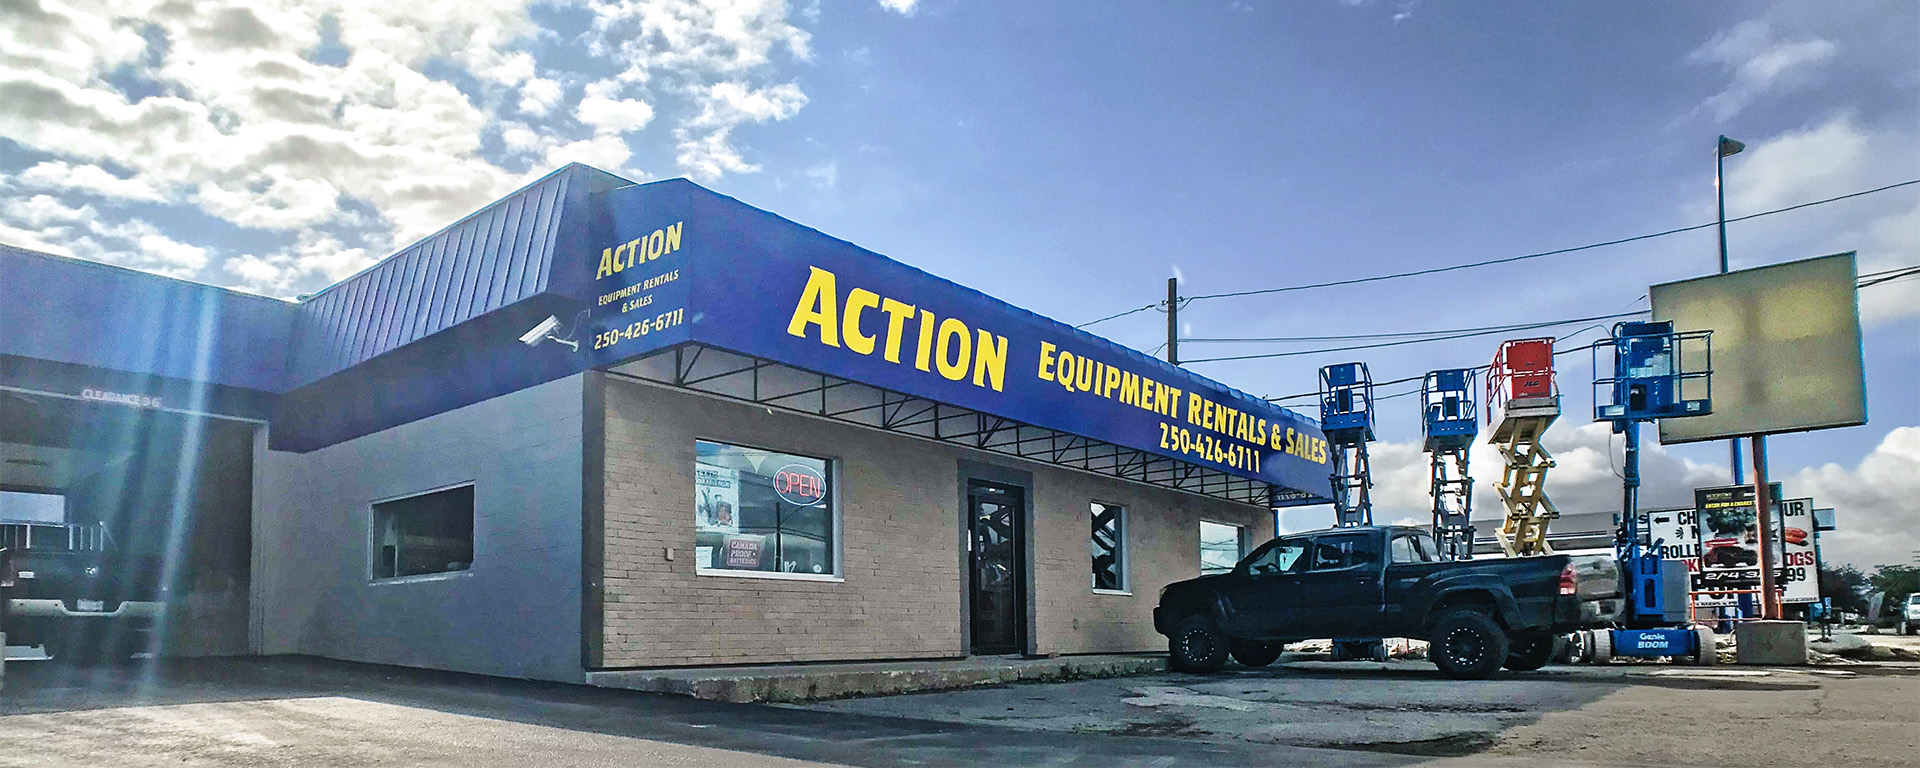 Front entrance of Action Equipment Rental is a grey building with a blue awning and yellow lettering.